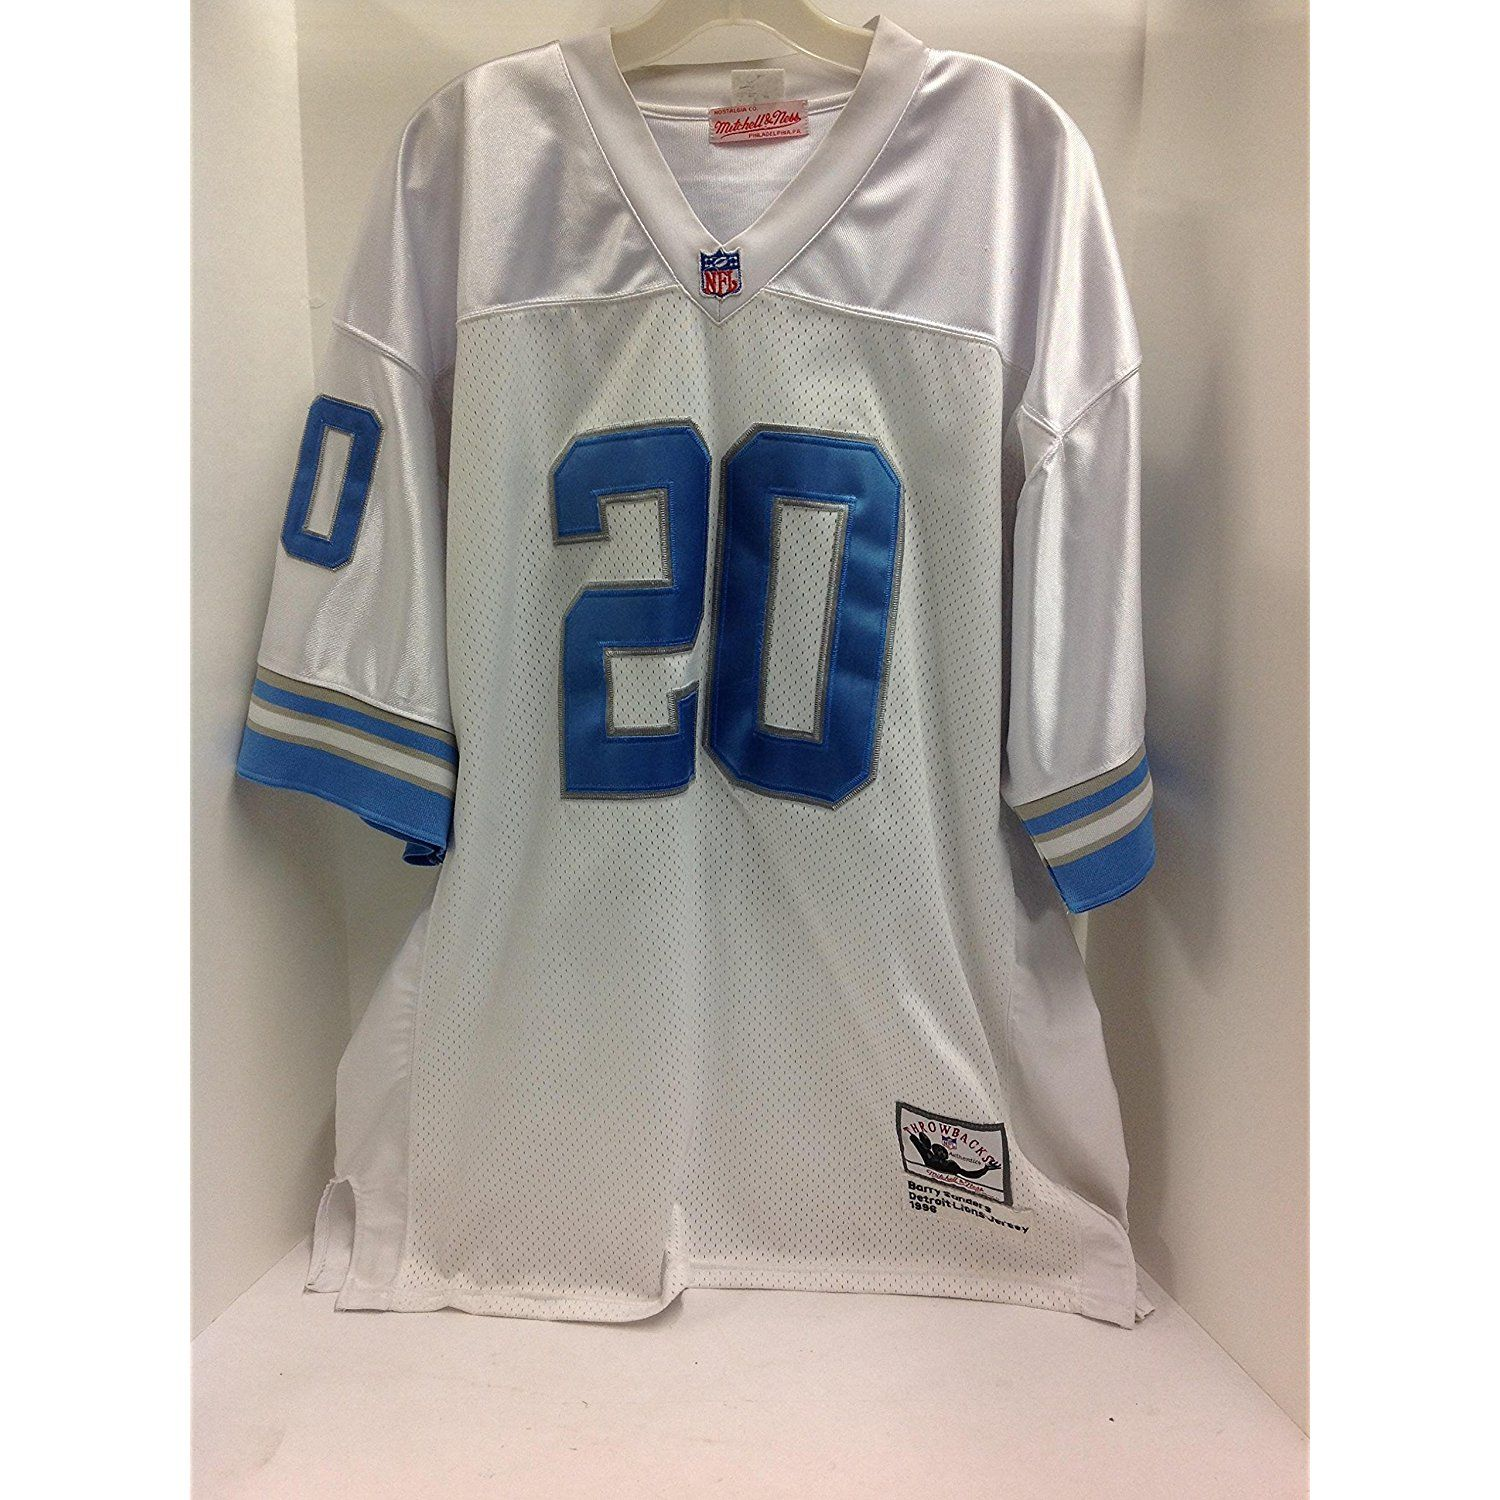 dadca0430c6 Preowned Barry Sanders Detroit Lions Jersey from 1996 - Adult Size  54  Throwbacks Jersey Made by Mitchell  SportsCollectibles